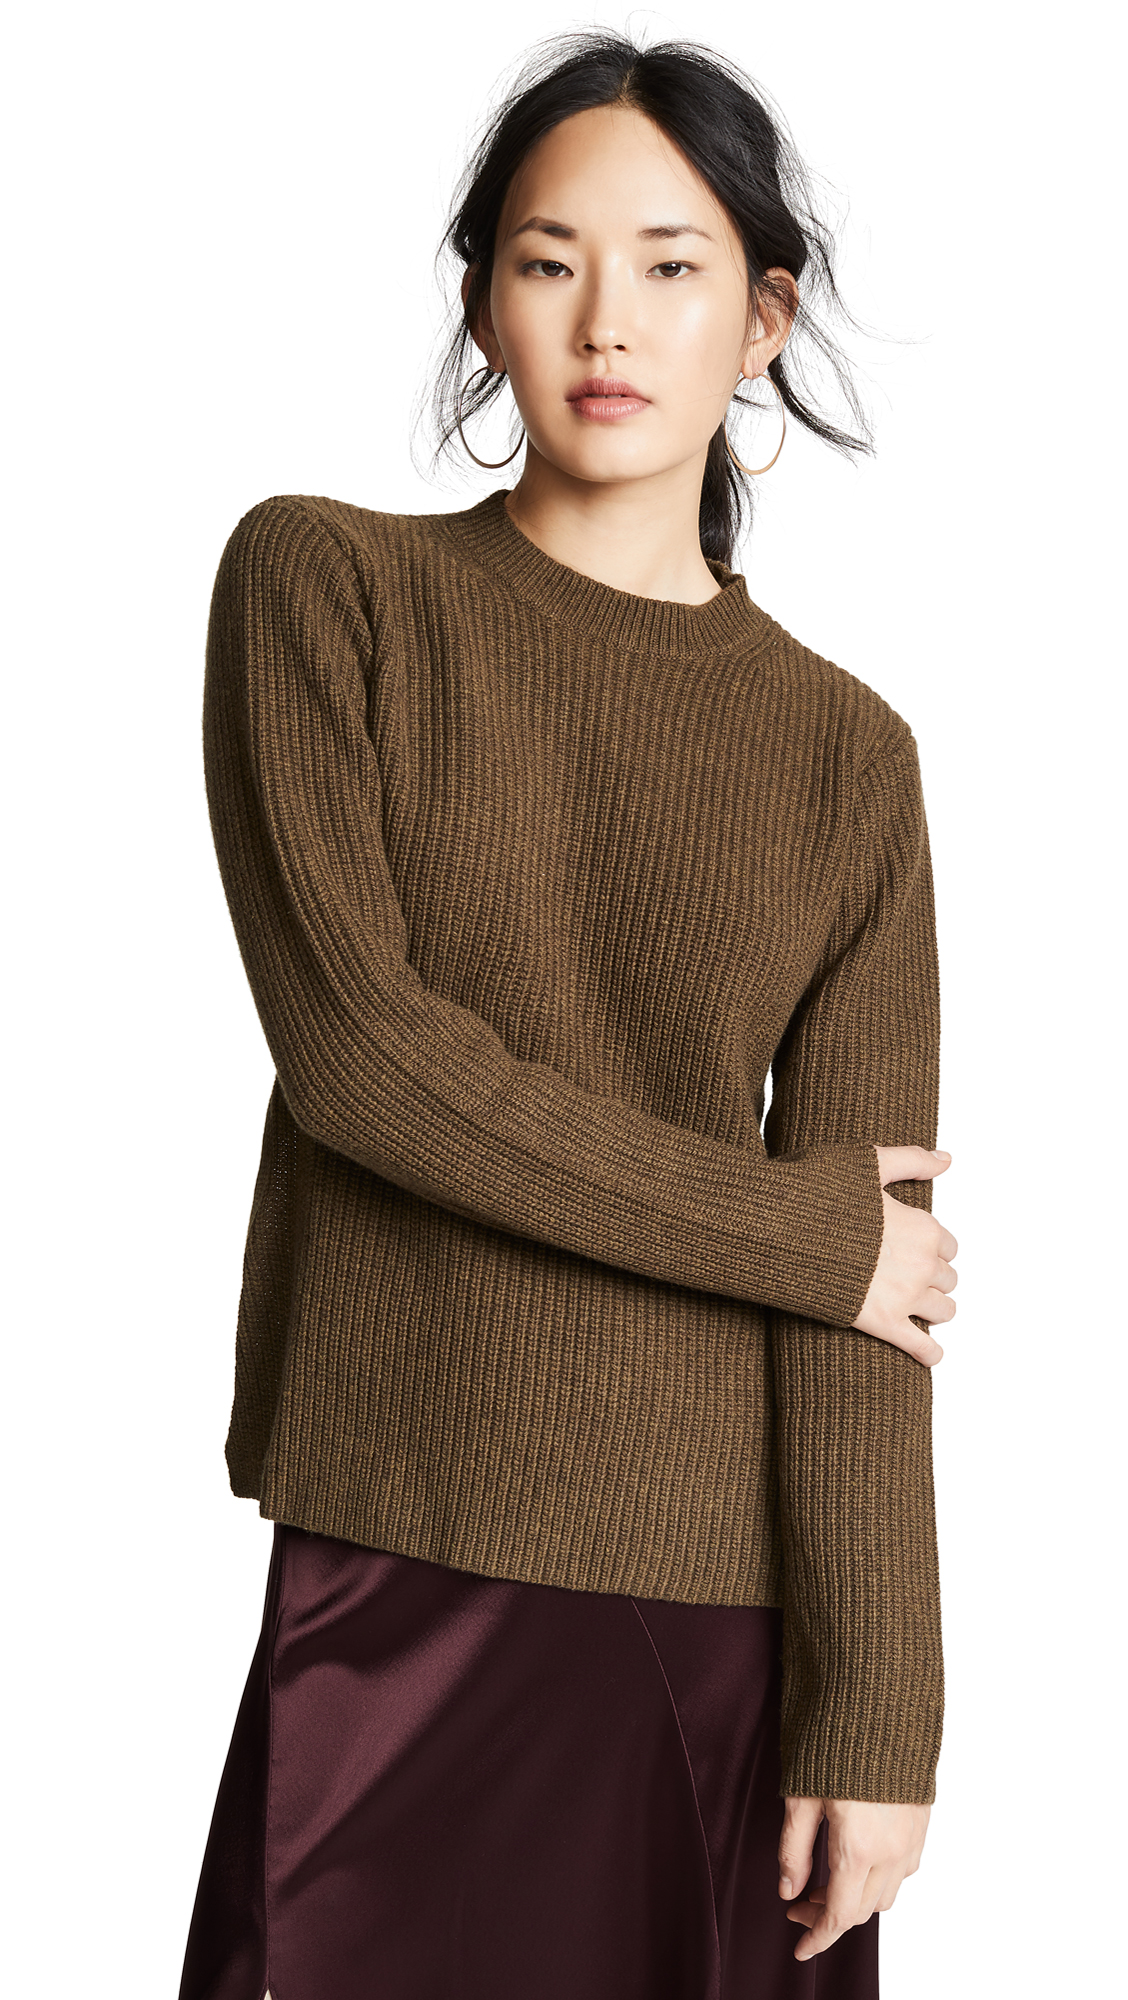 EDITION10 Open Back Sweater in Cypress